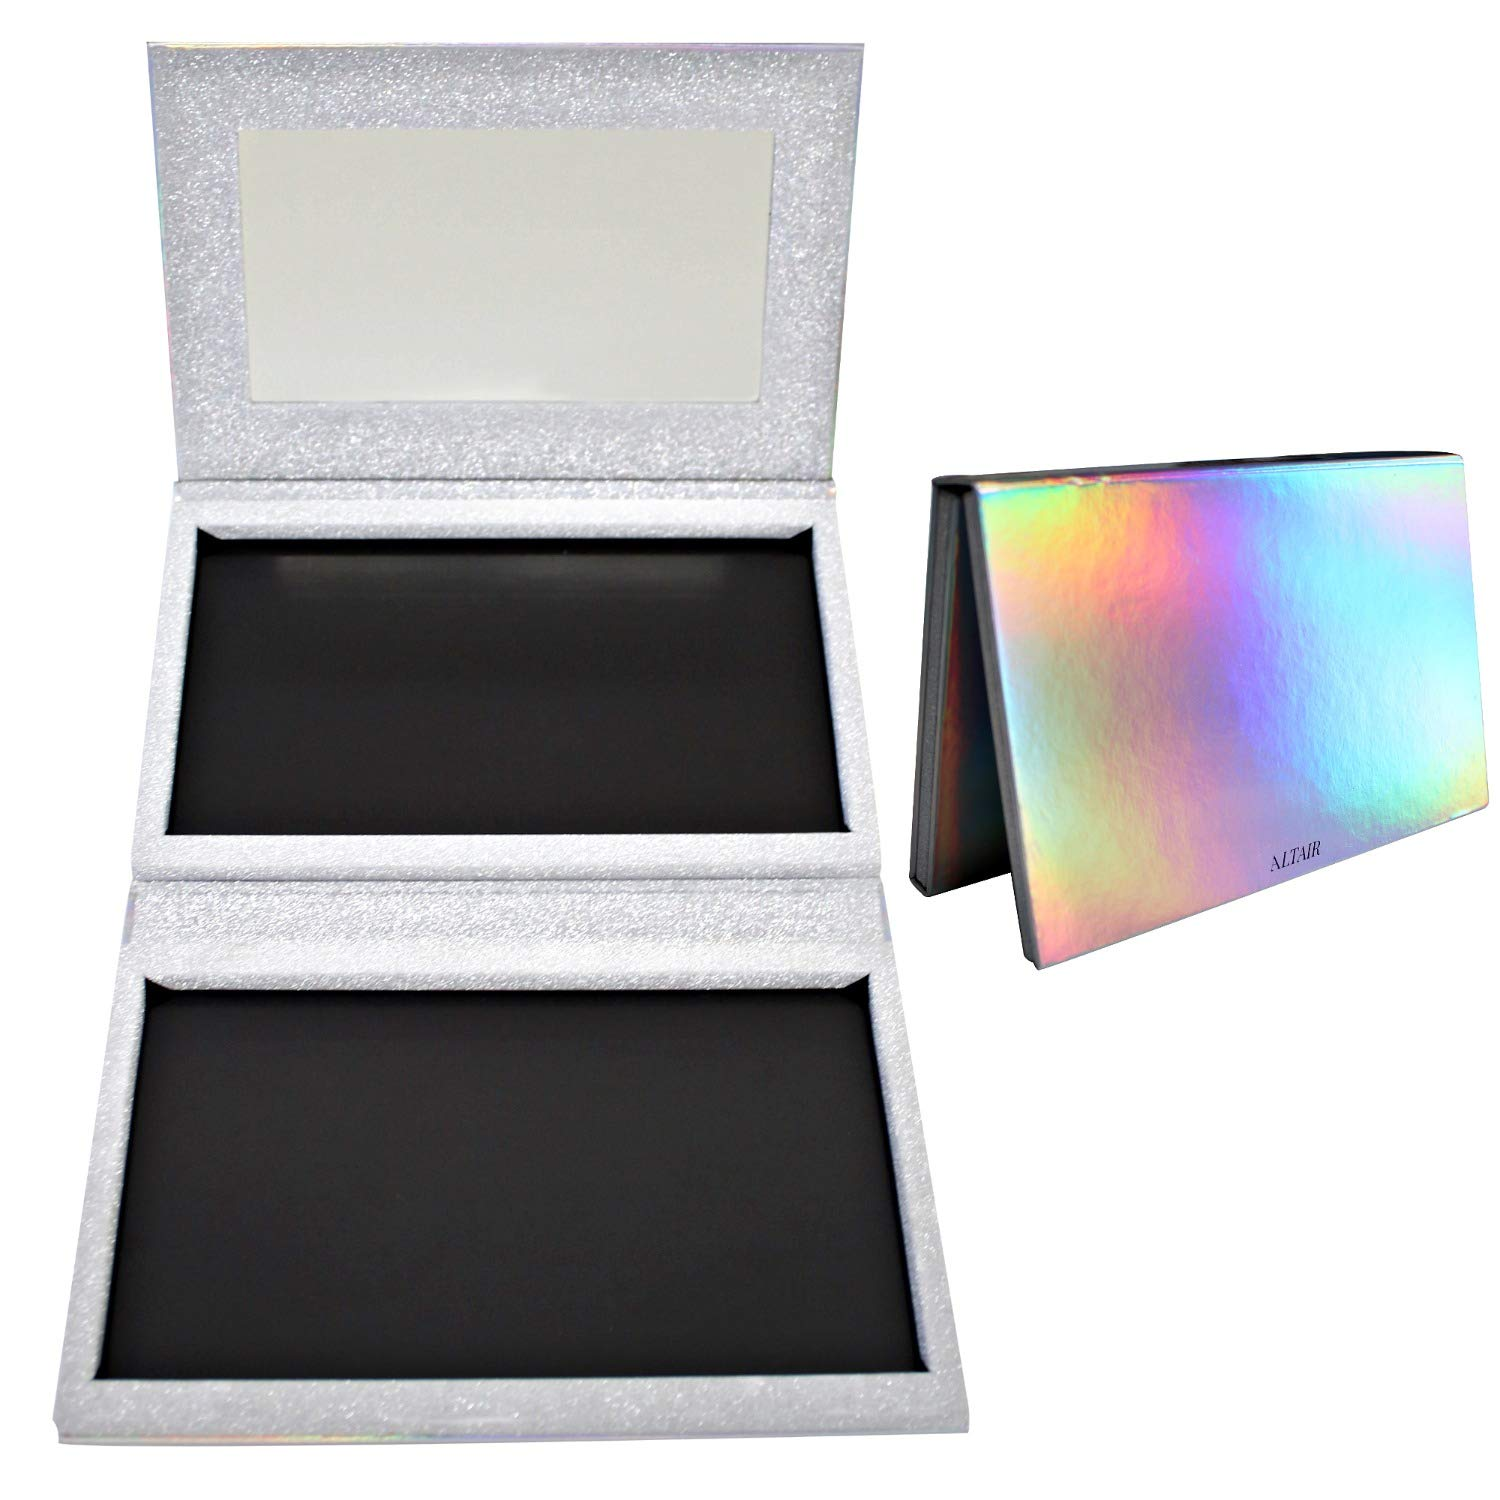 Holographic XL - 56 Pan Empty Magnetic Makeup Palette with Mirror Set for Depotting with 10pcs Metal Stickers. Silver Glitter Extra Large Magnetic Palette for Eyeshadow, Blush, Bronzer and Highlighter